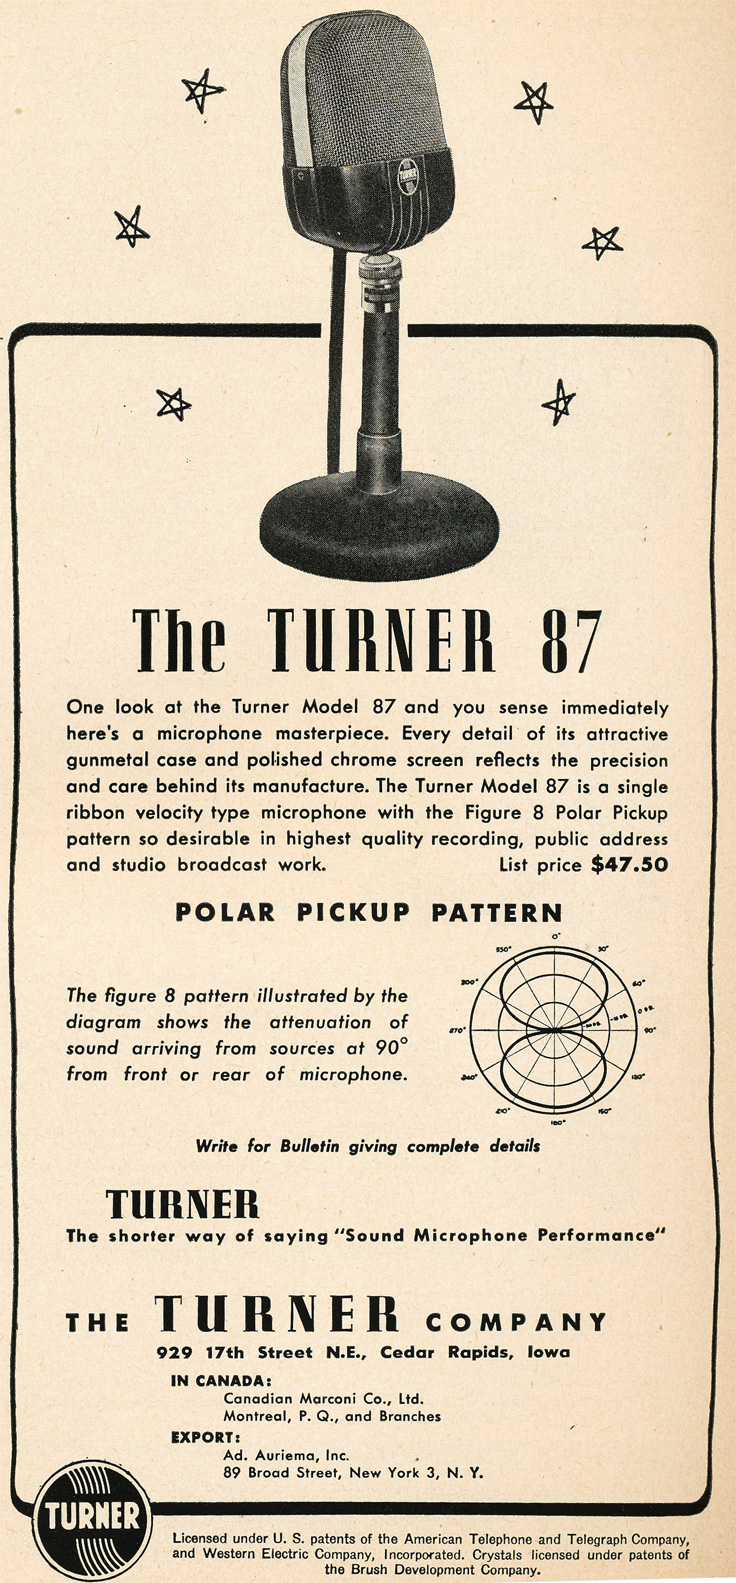 949 Turner 87 microphones in Reel2ReelTexas.com's vintage recording collection